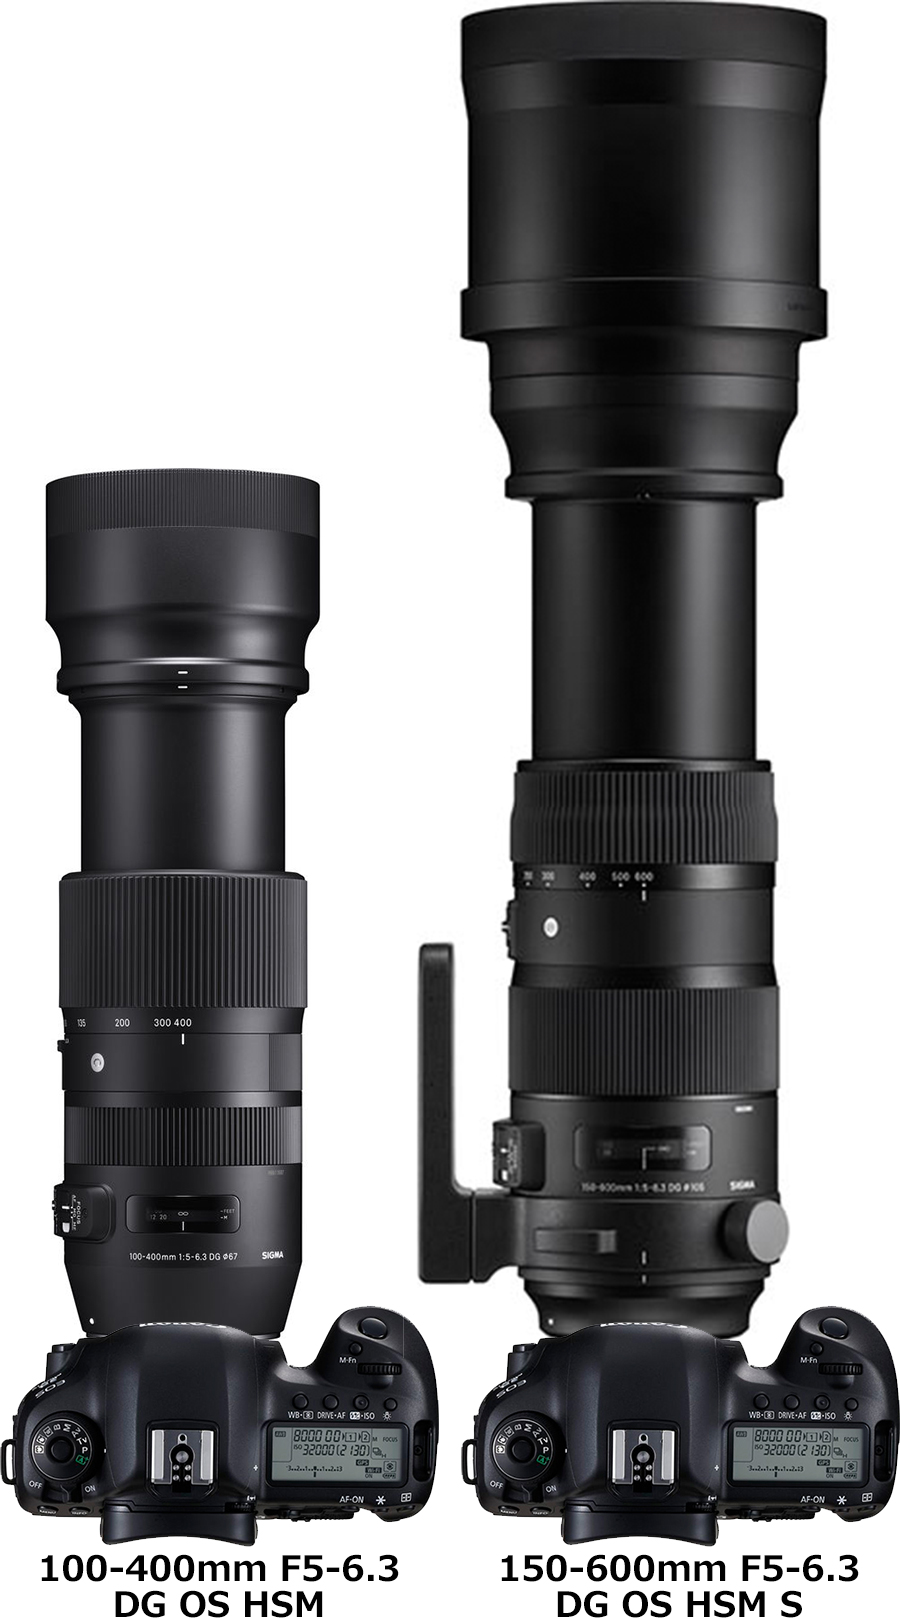 シグマ「100-400mm F5-6.3 DG OS HSM | Contemporary」と「150-600mm F5-6.3 DG OS HSM | Contemporary/Sports」 3